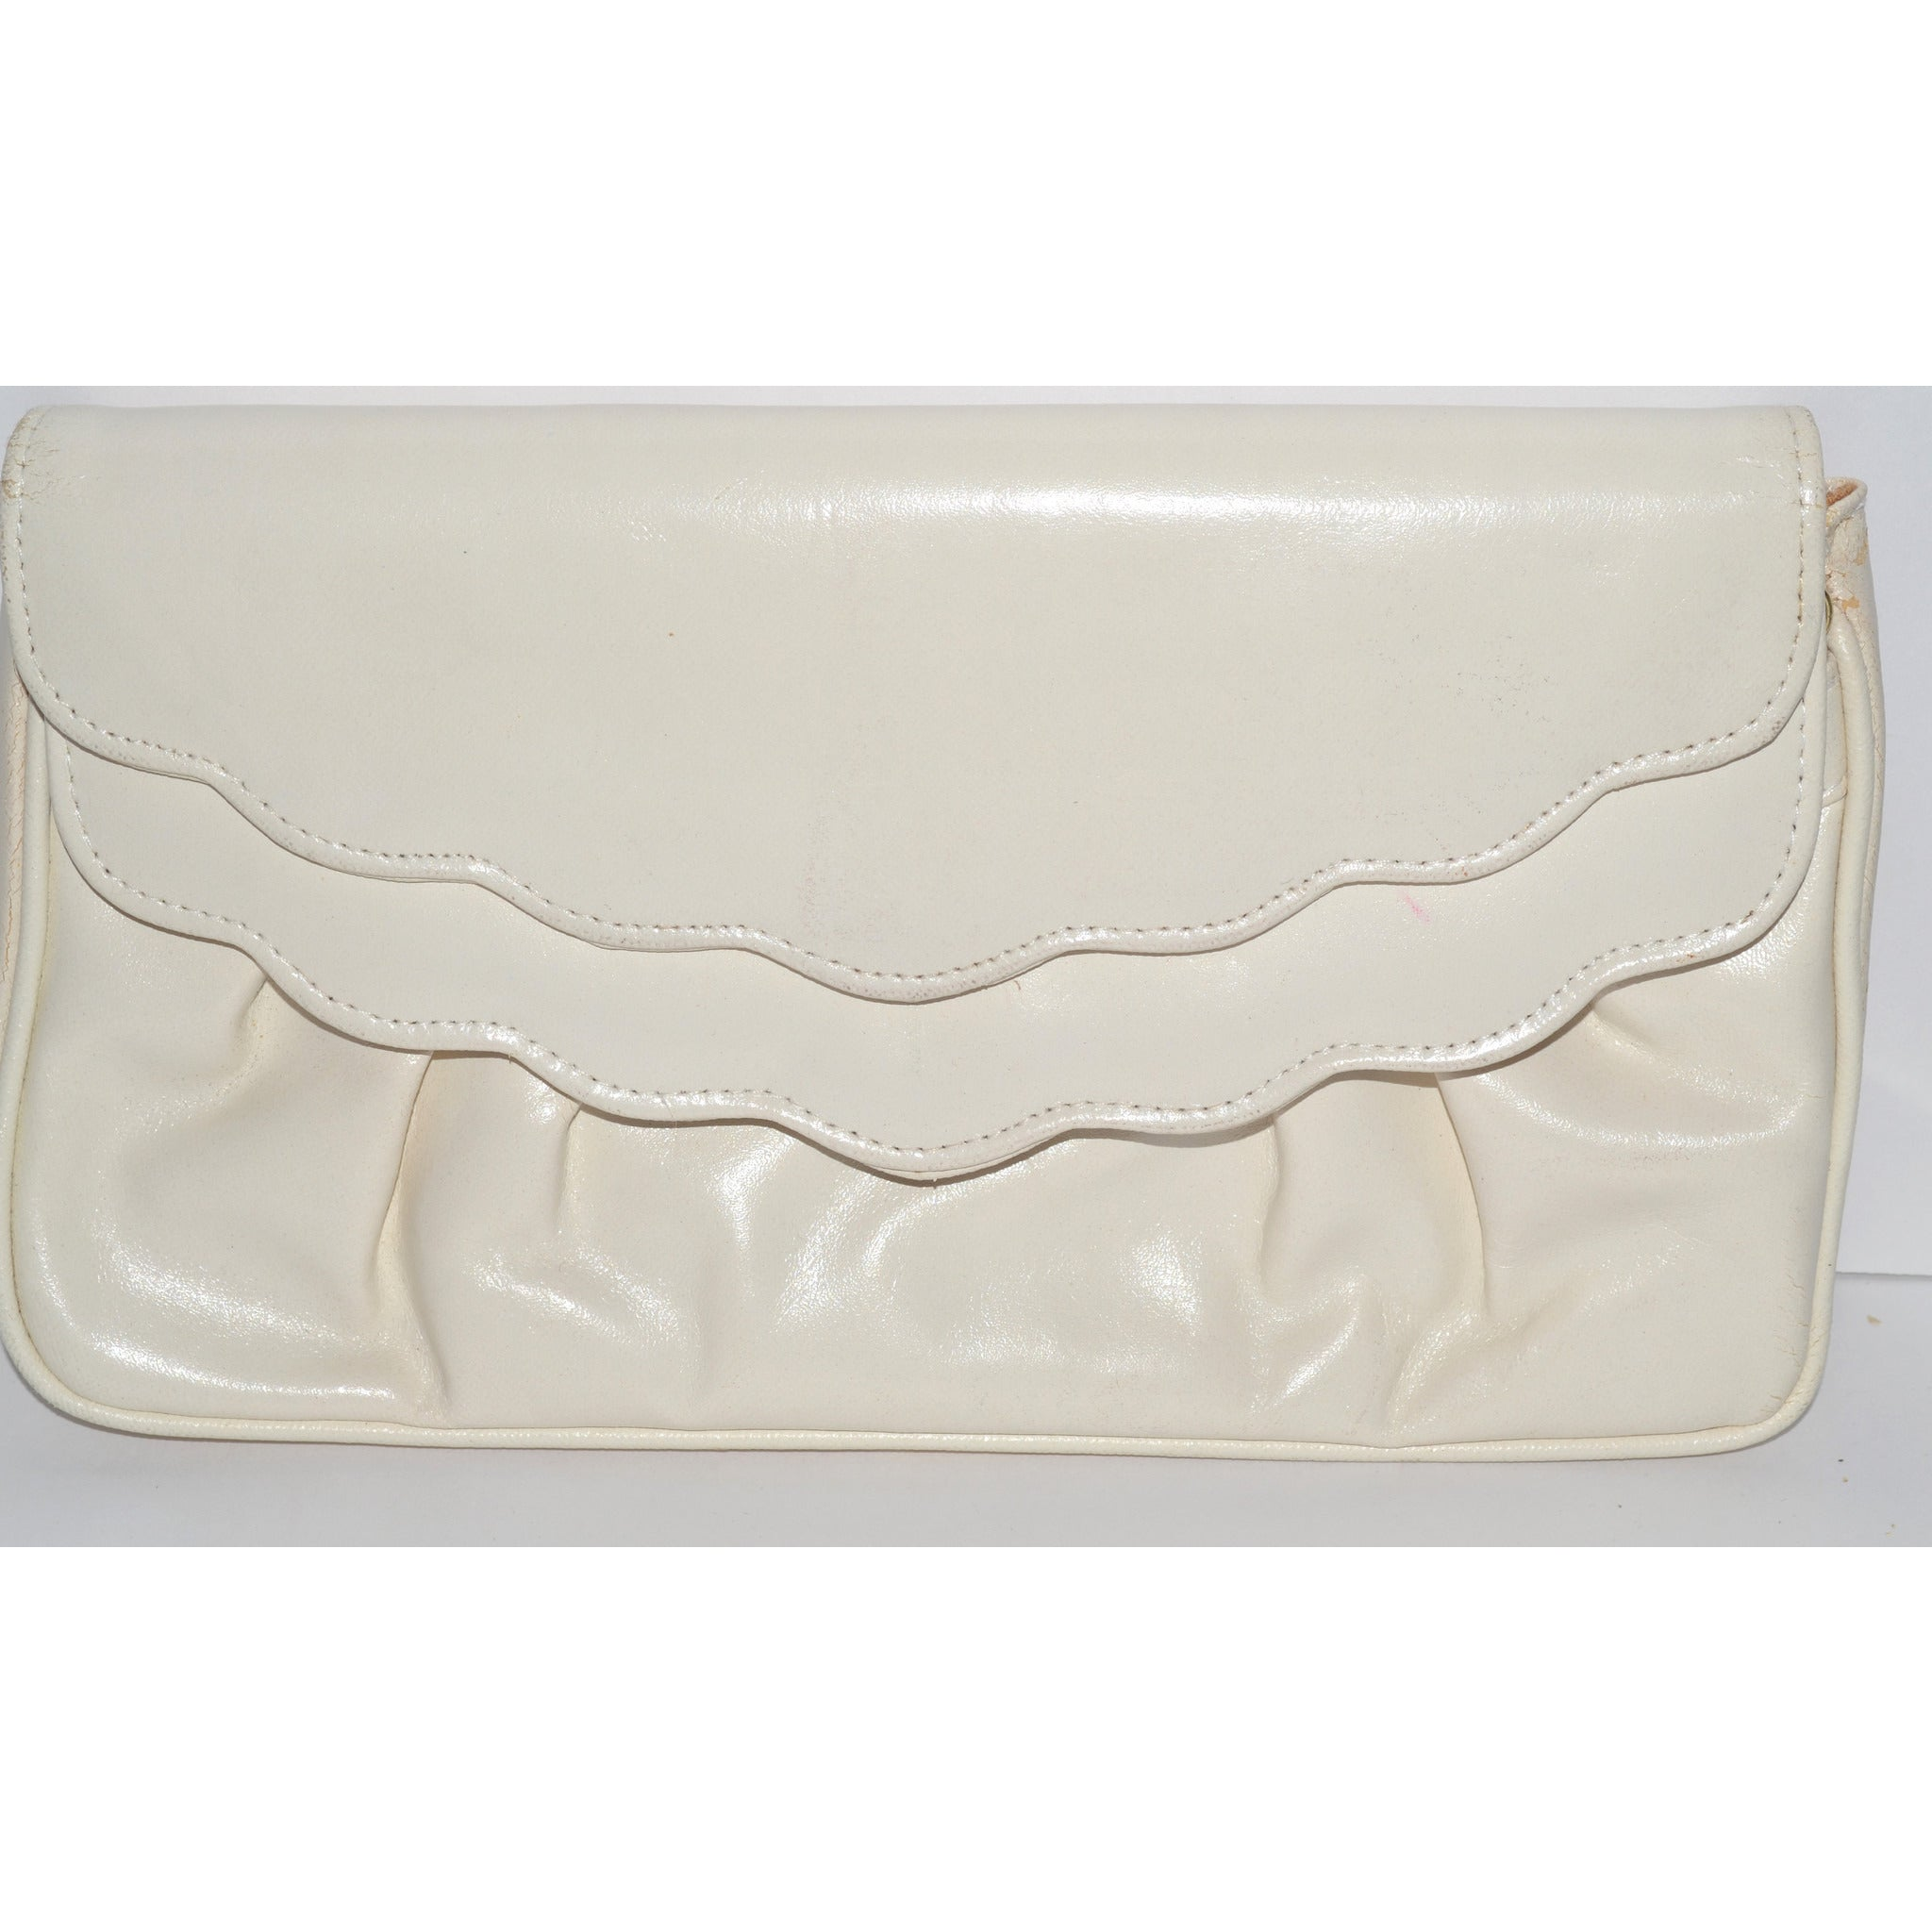 Vintage Off White Leather Clutch Purse